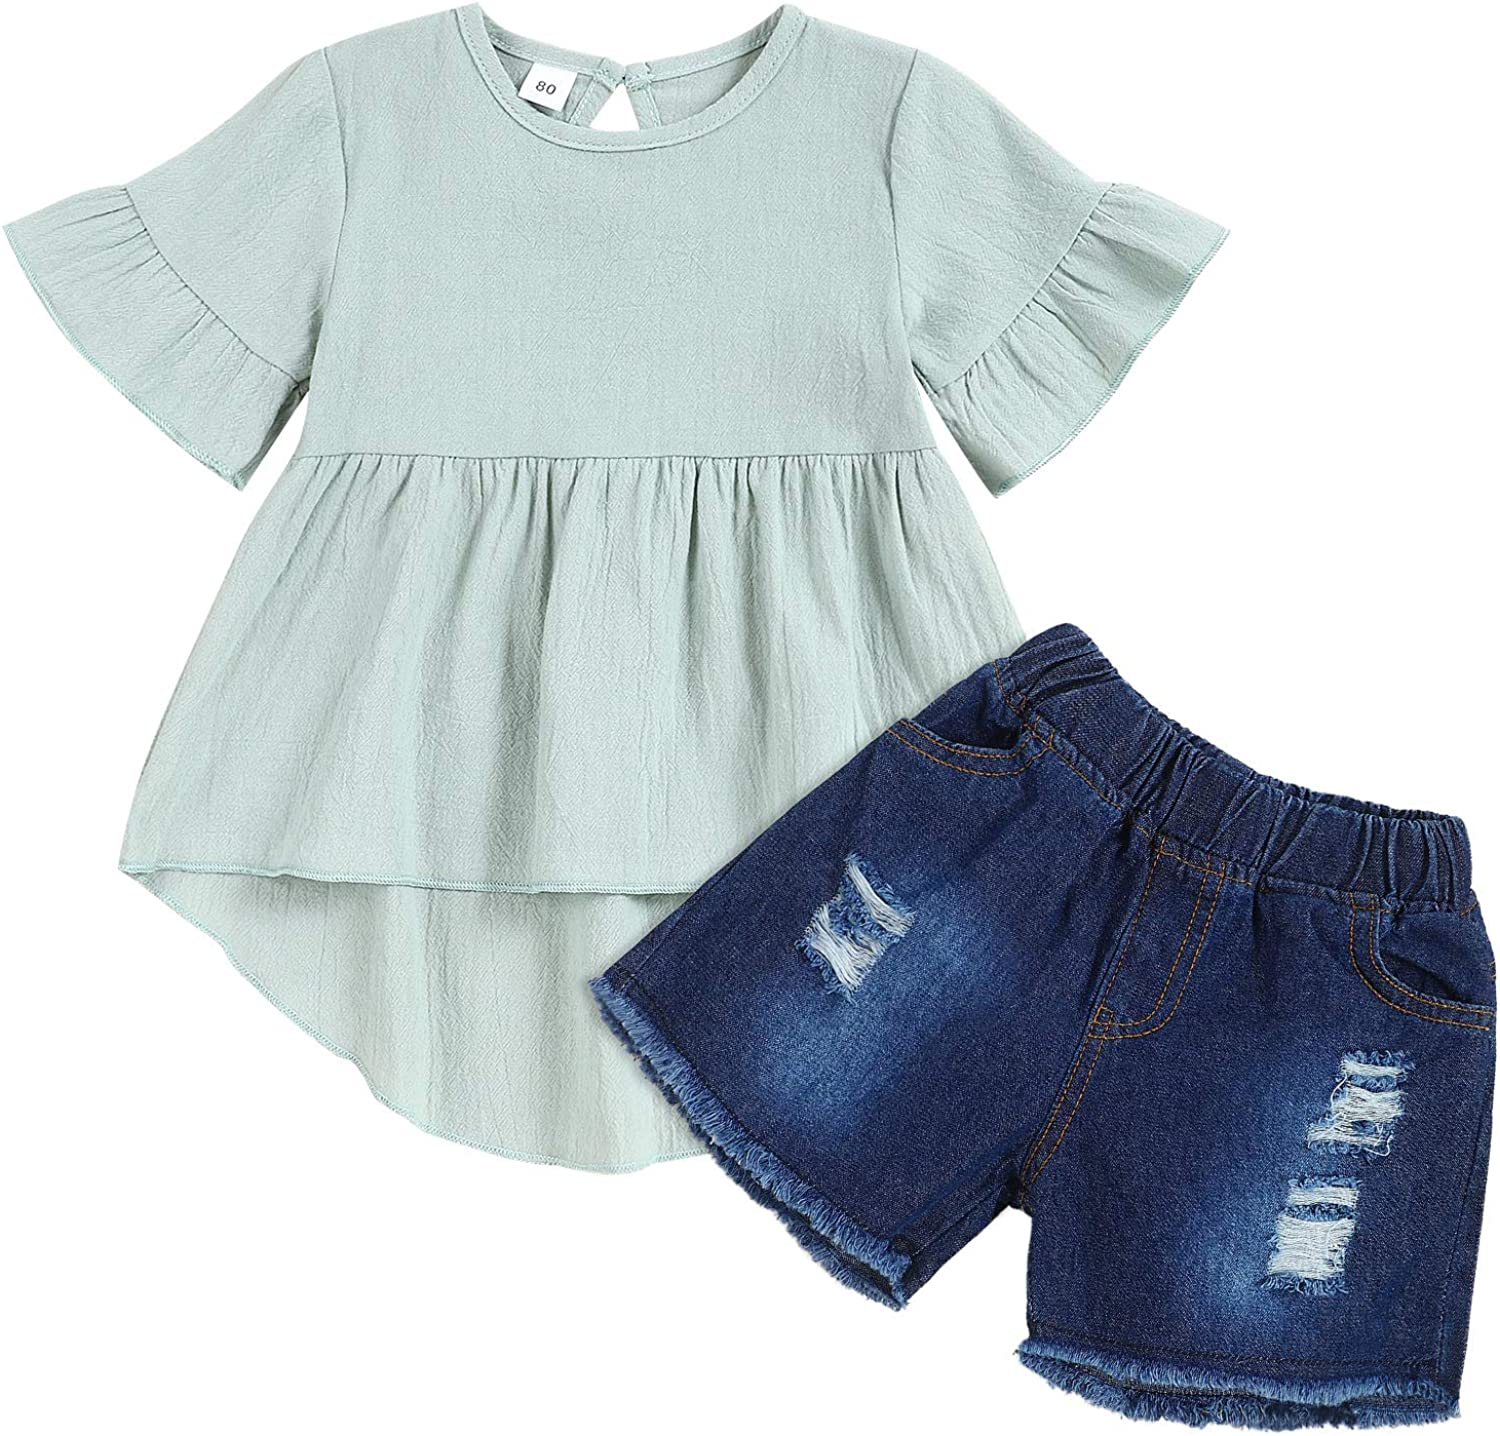 Toddler Baby Girl Clothes Cotton Linen Dress Top Short Ripped Jeans 2pcs Girl Summer Outfit Sets Green